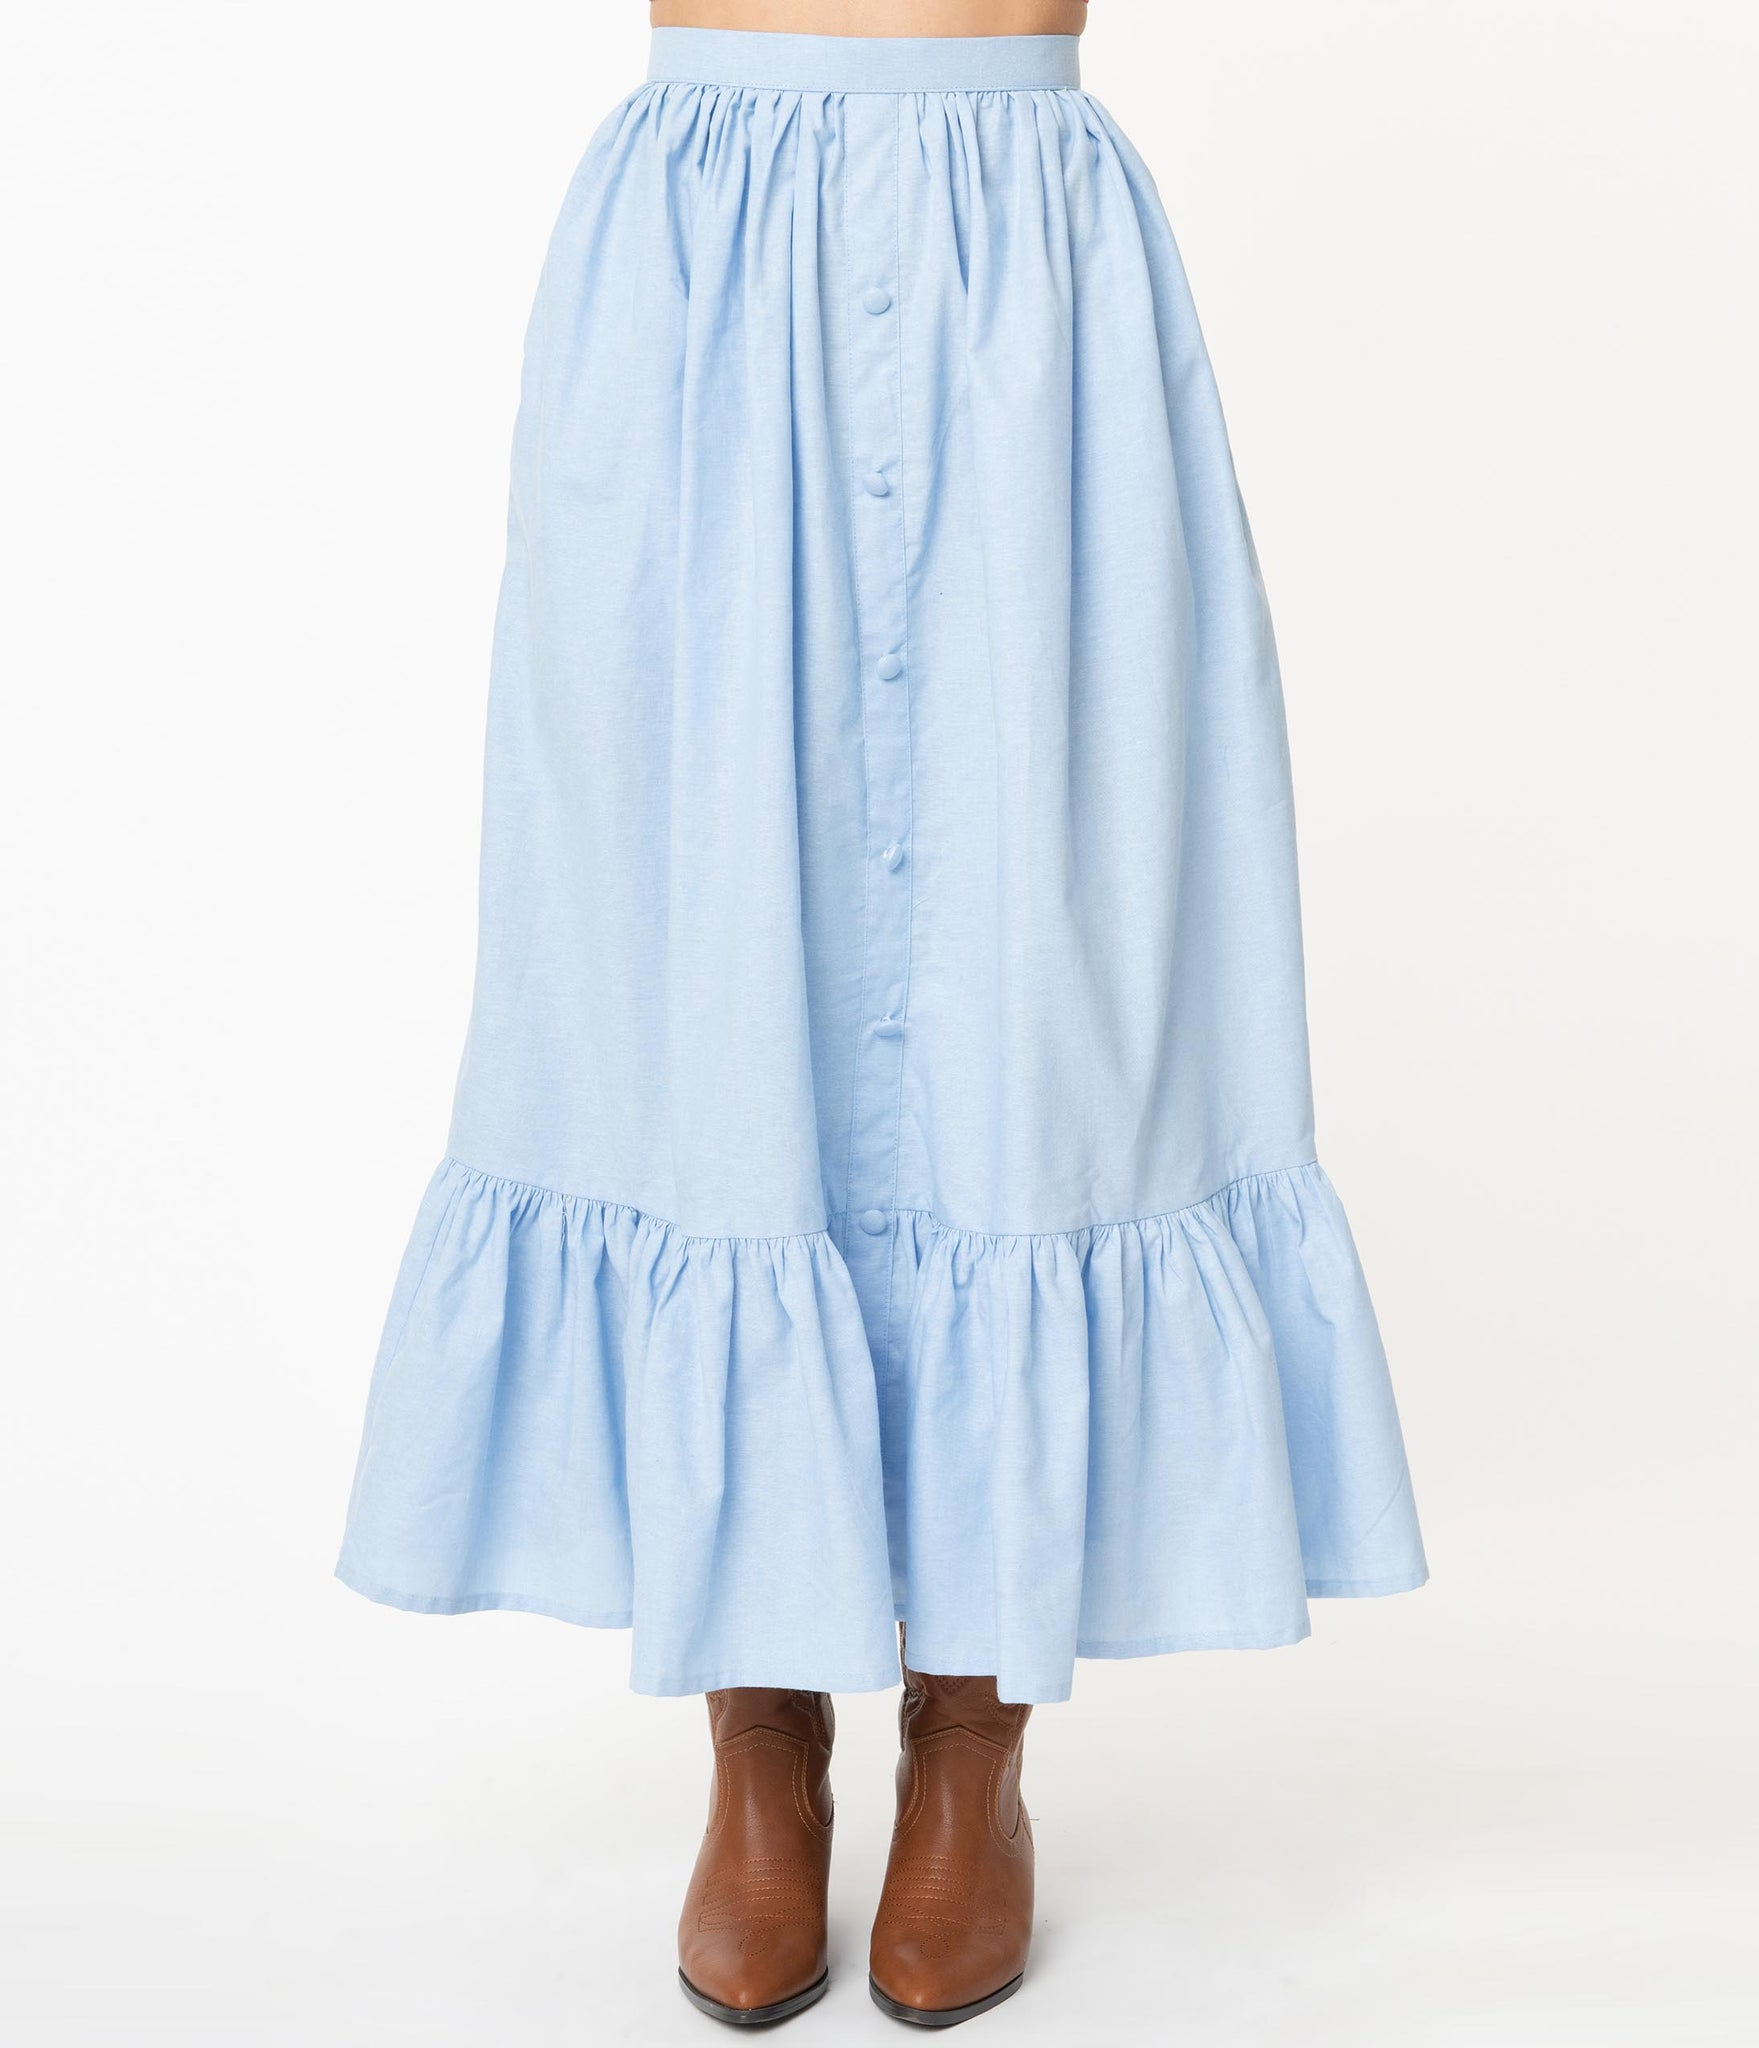 Magnolia Place Western Style Chambray Maxi Skirt